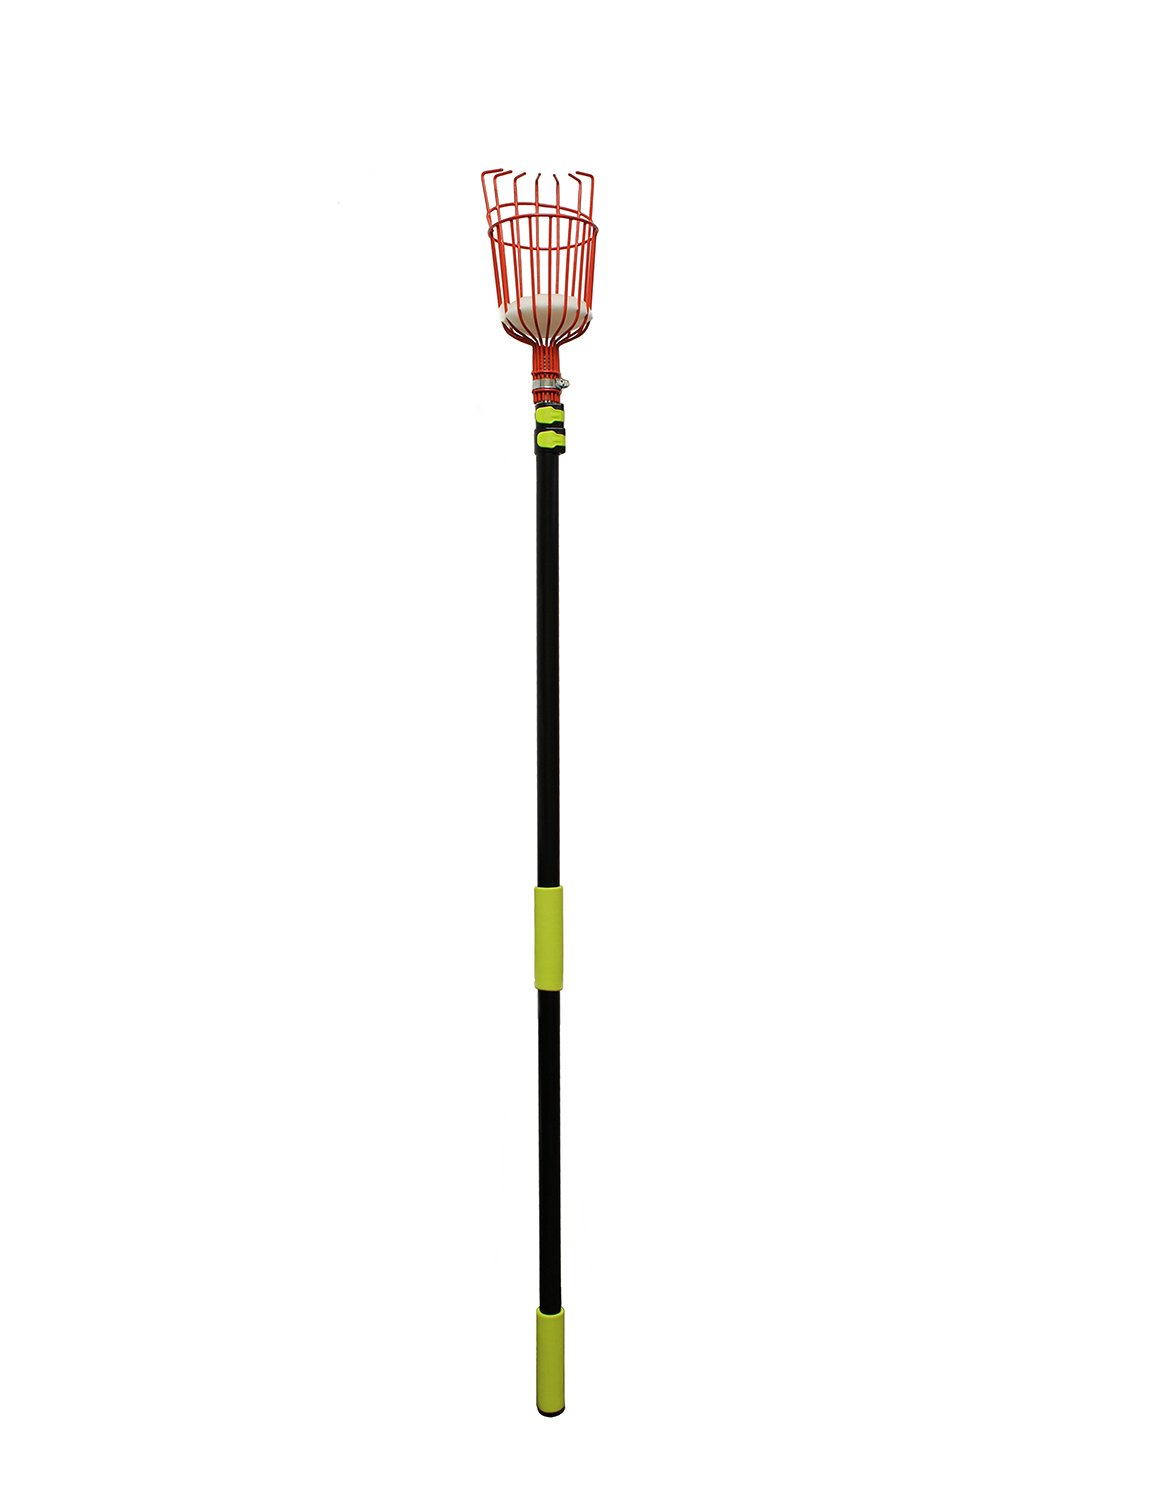 7Penn Apple Picking Fruit Tree Picker Tool with Metal Basket and Light Aluminum 4.5 to 13' Feet Telescoping Grabber Pole